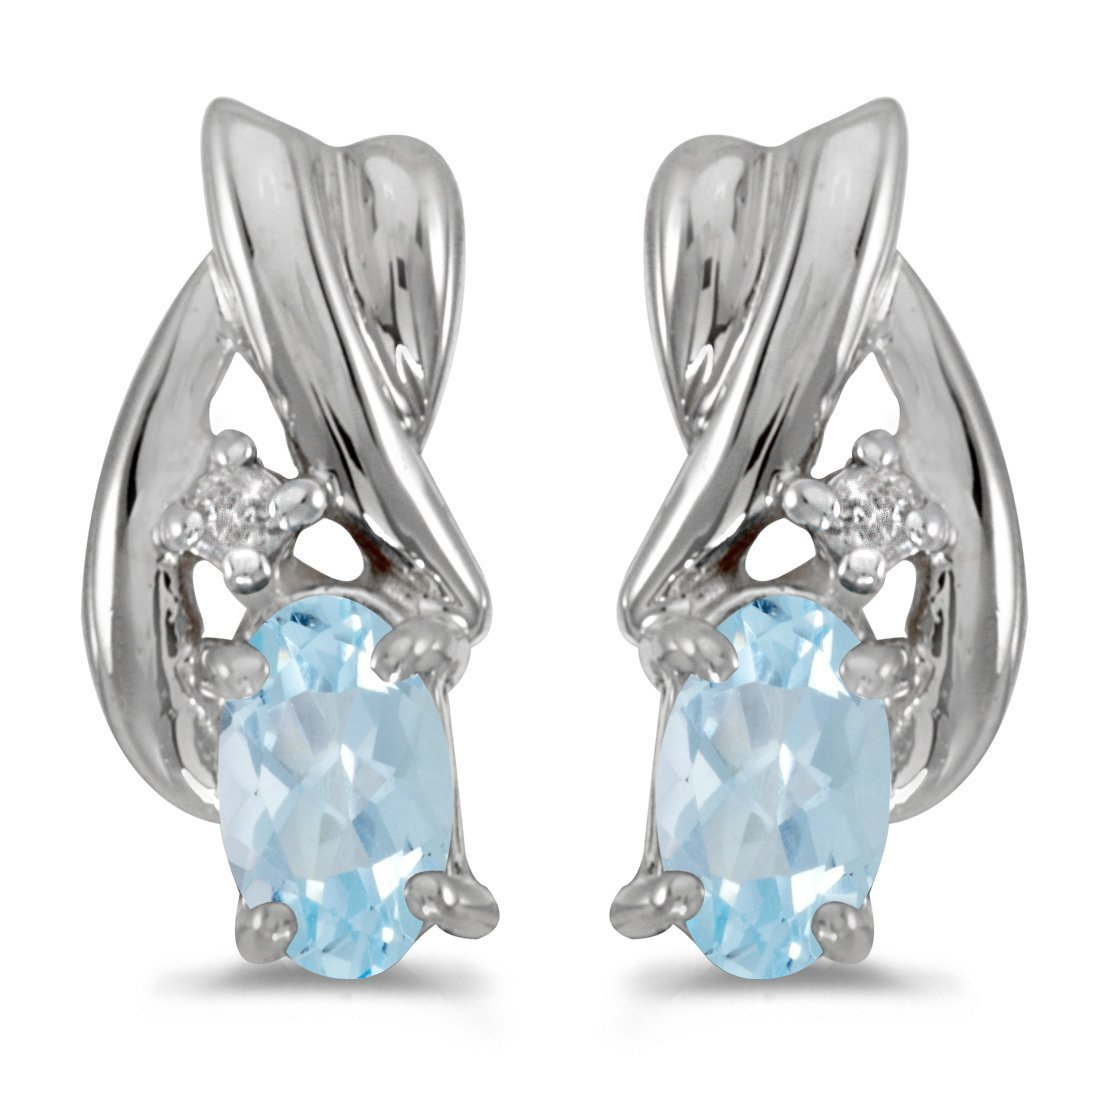 FB Jewels Solid 10k White Gold Studs Oval Gemstone And Diamond Earrings